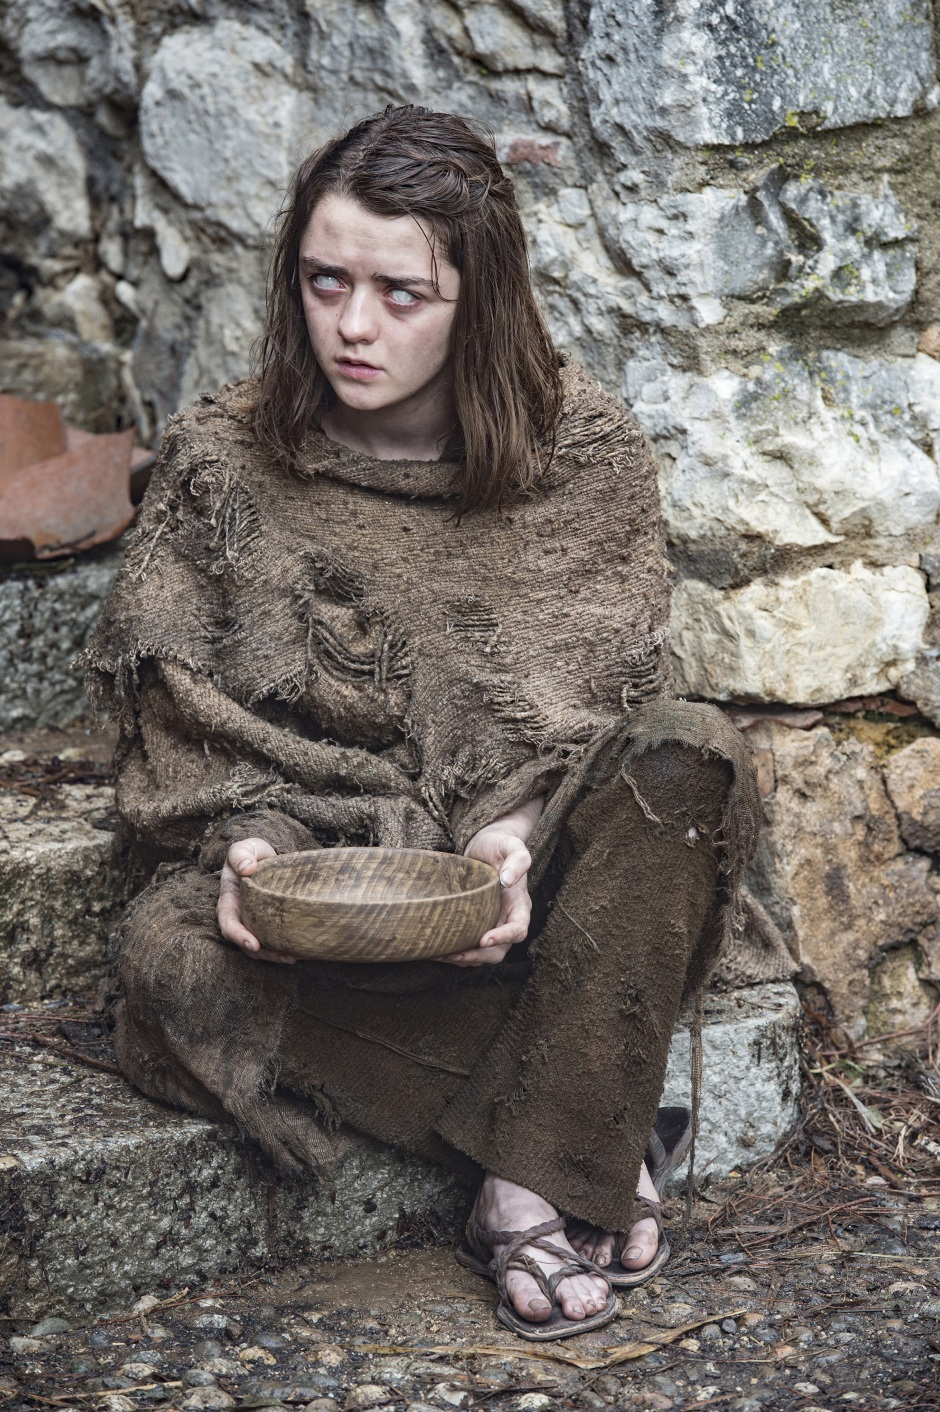 maisie-williams-game-of-thrones-season-6-01-2296×3450